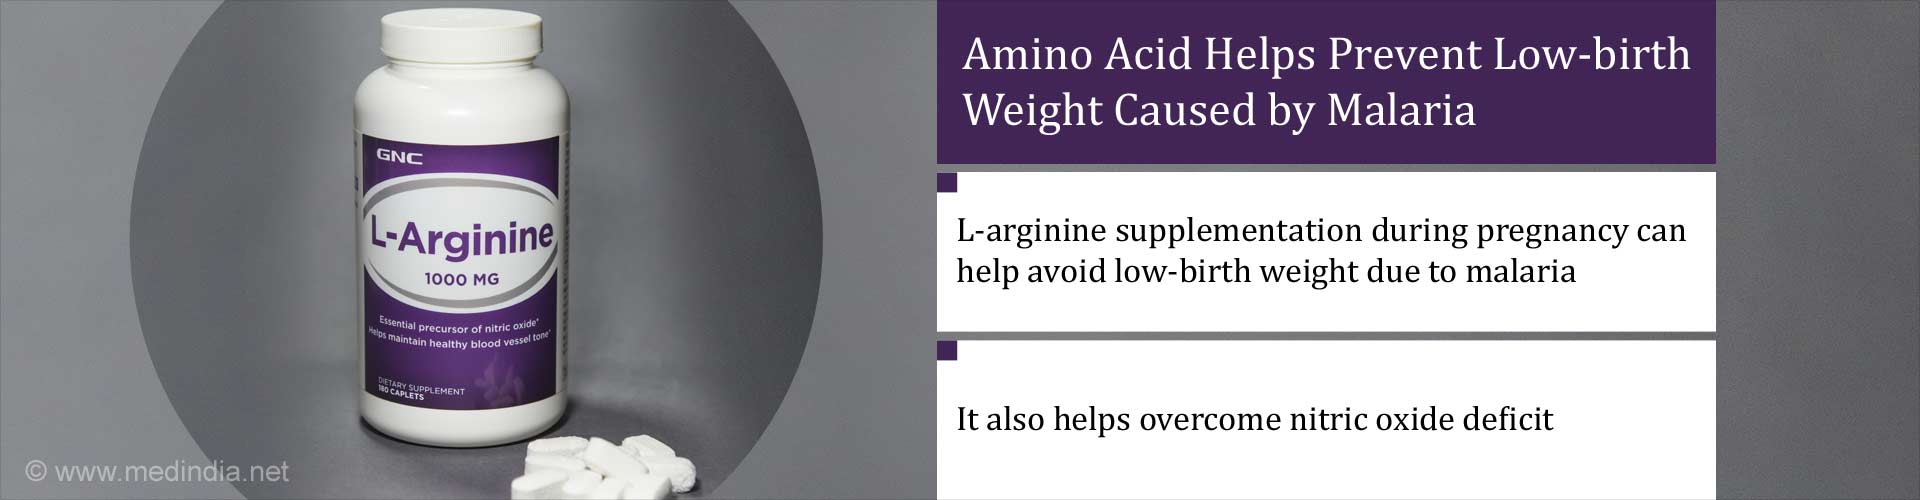 Amino Acid Helps Prevent Low-birth Weight Caused by Malaria